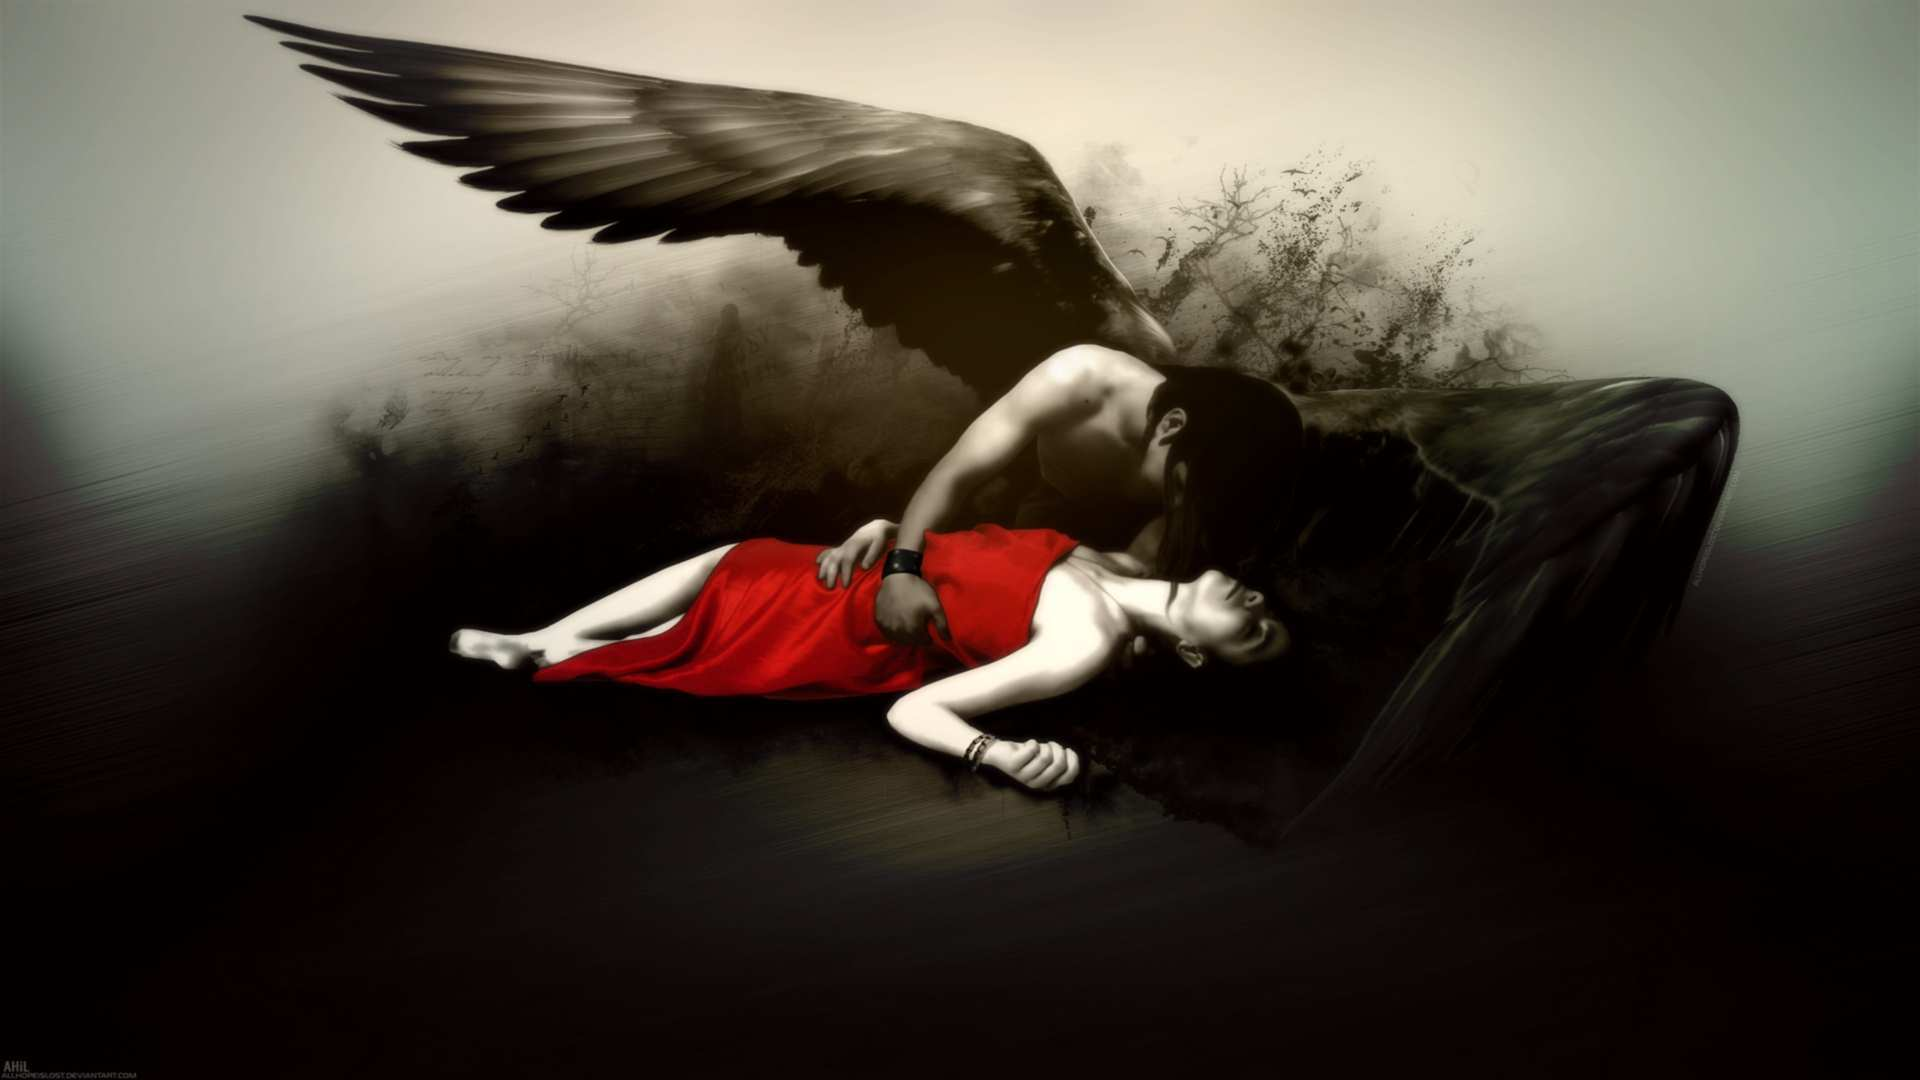 Gothic Love Wallpapers Mobile : Other Wallpaper - Timmatic com